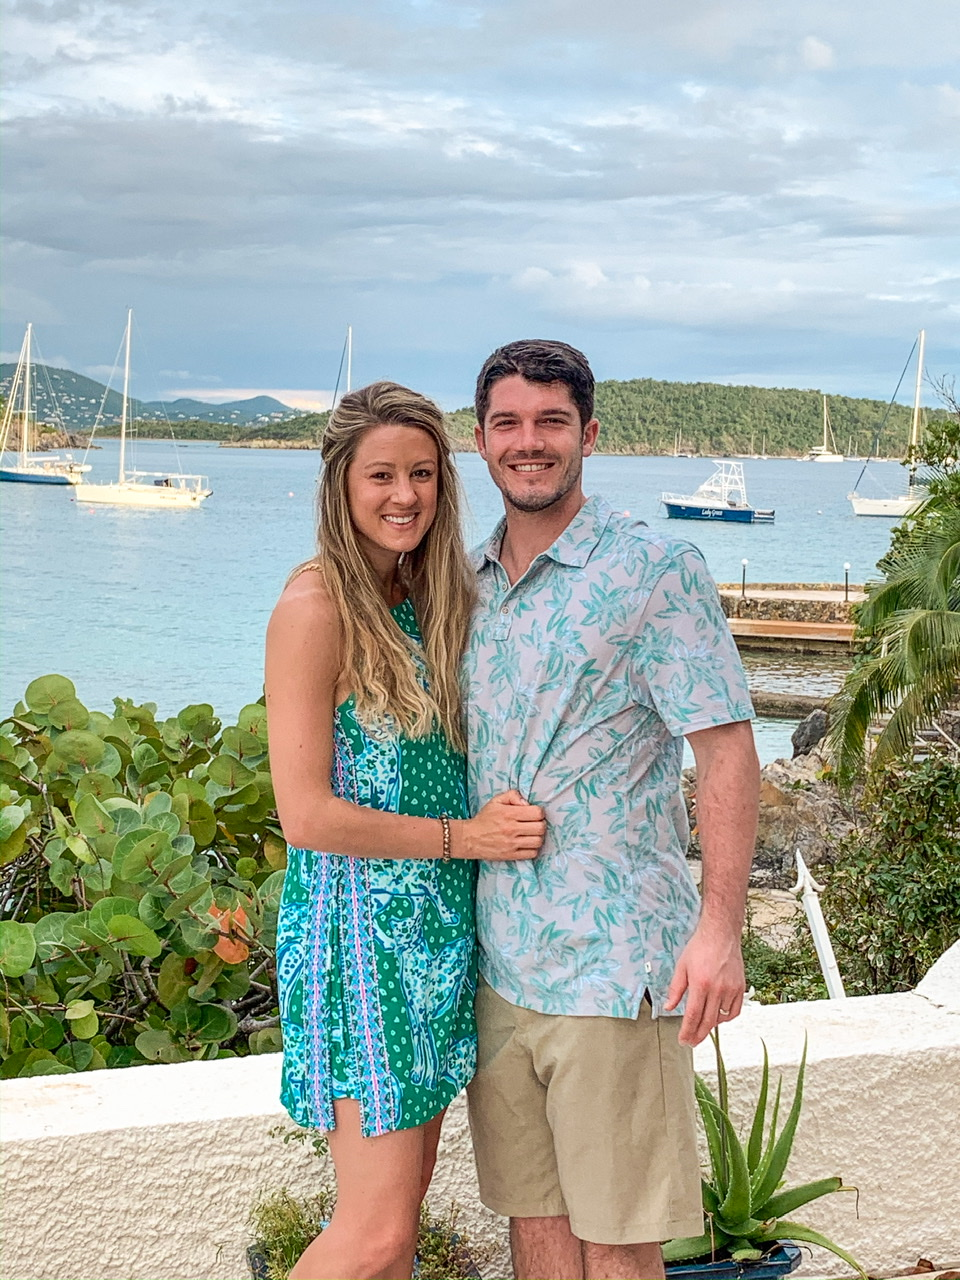 Final night photo in St Thomas outside of our AirBnB before group dinner